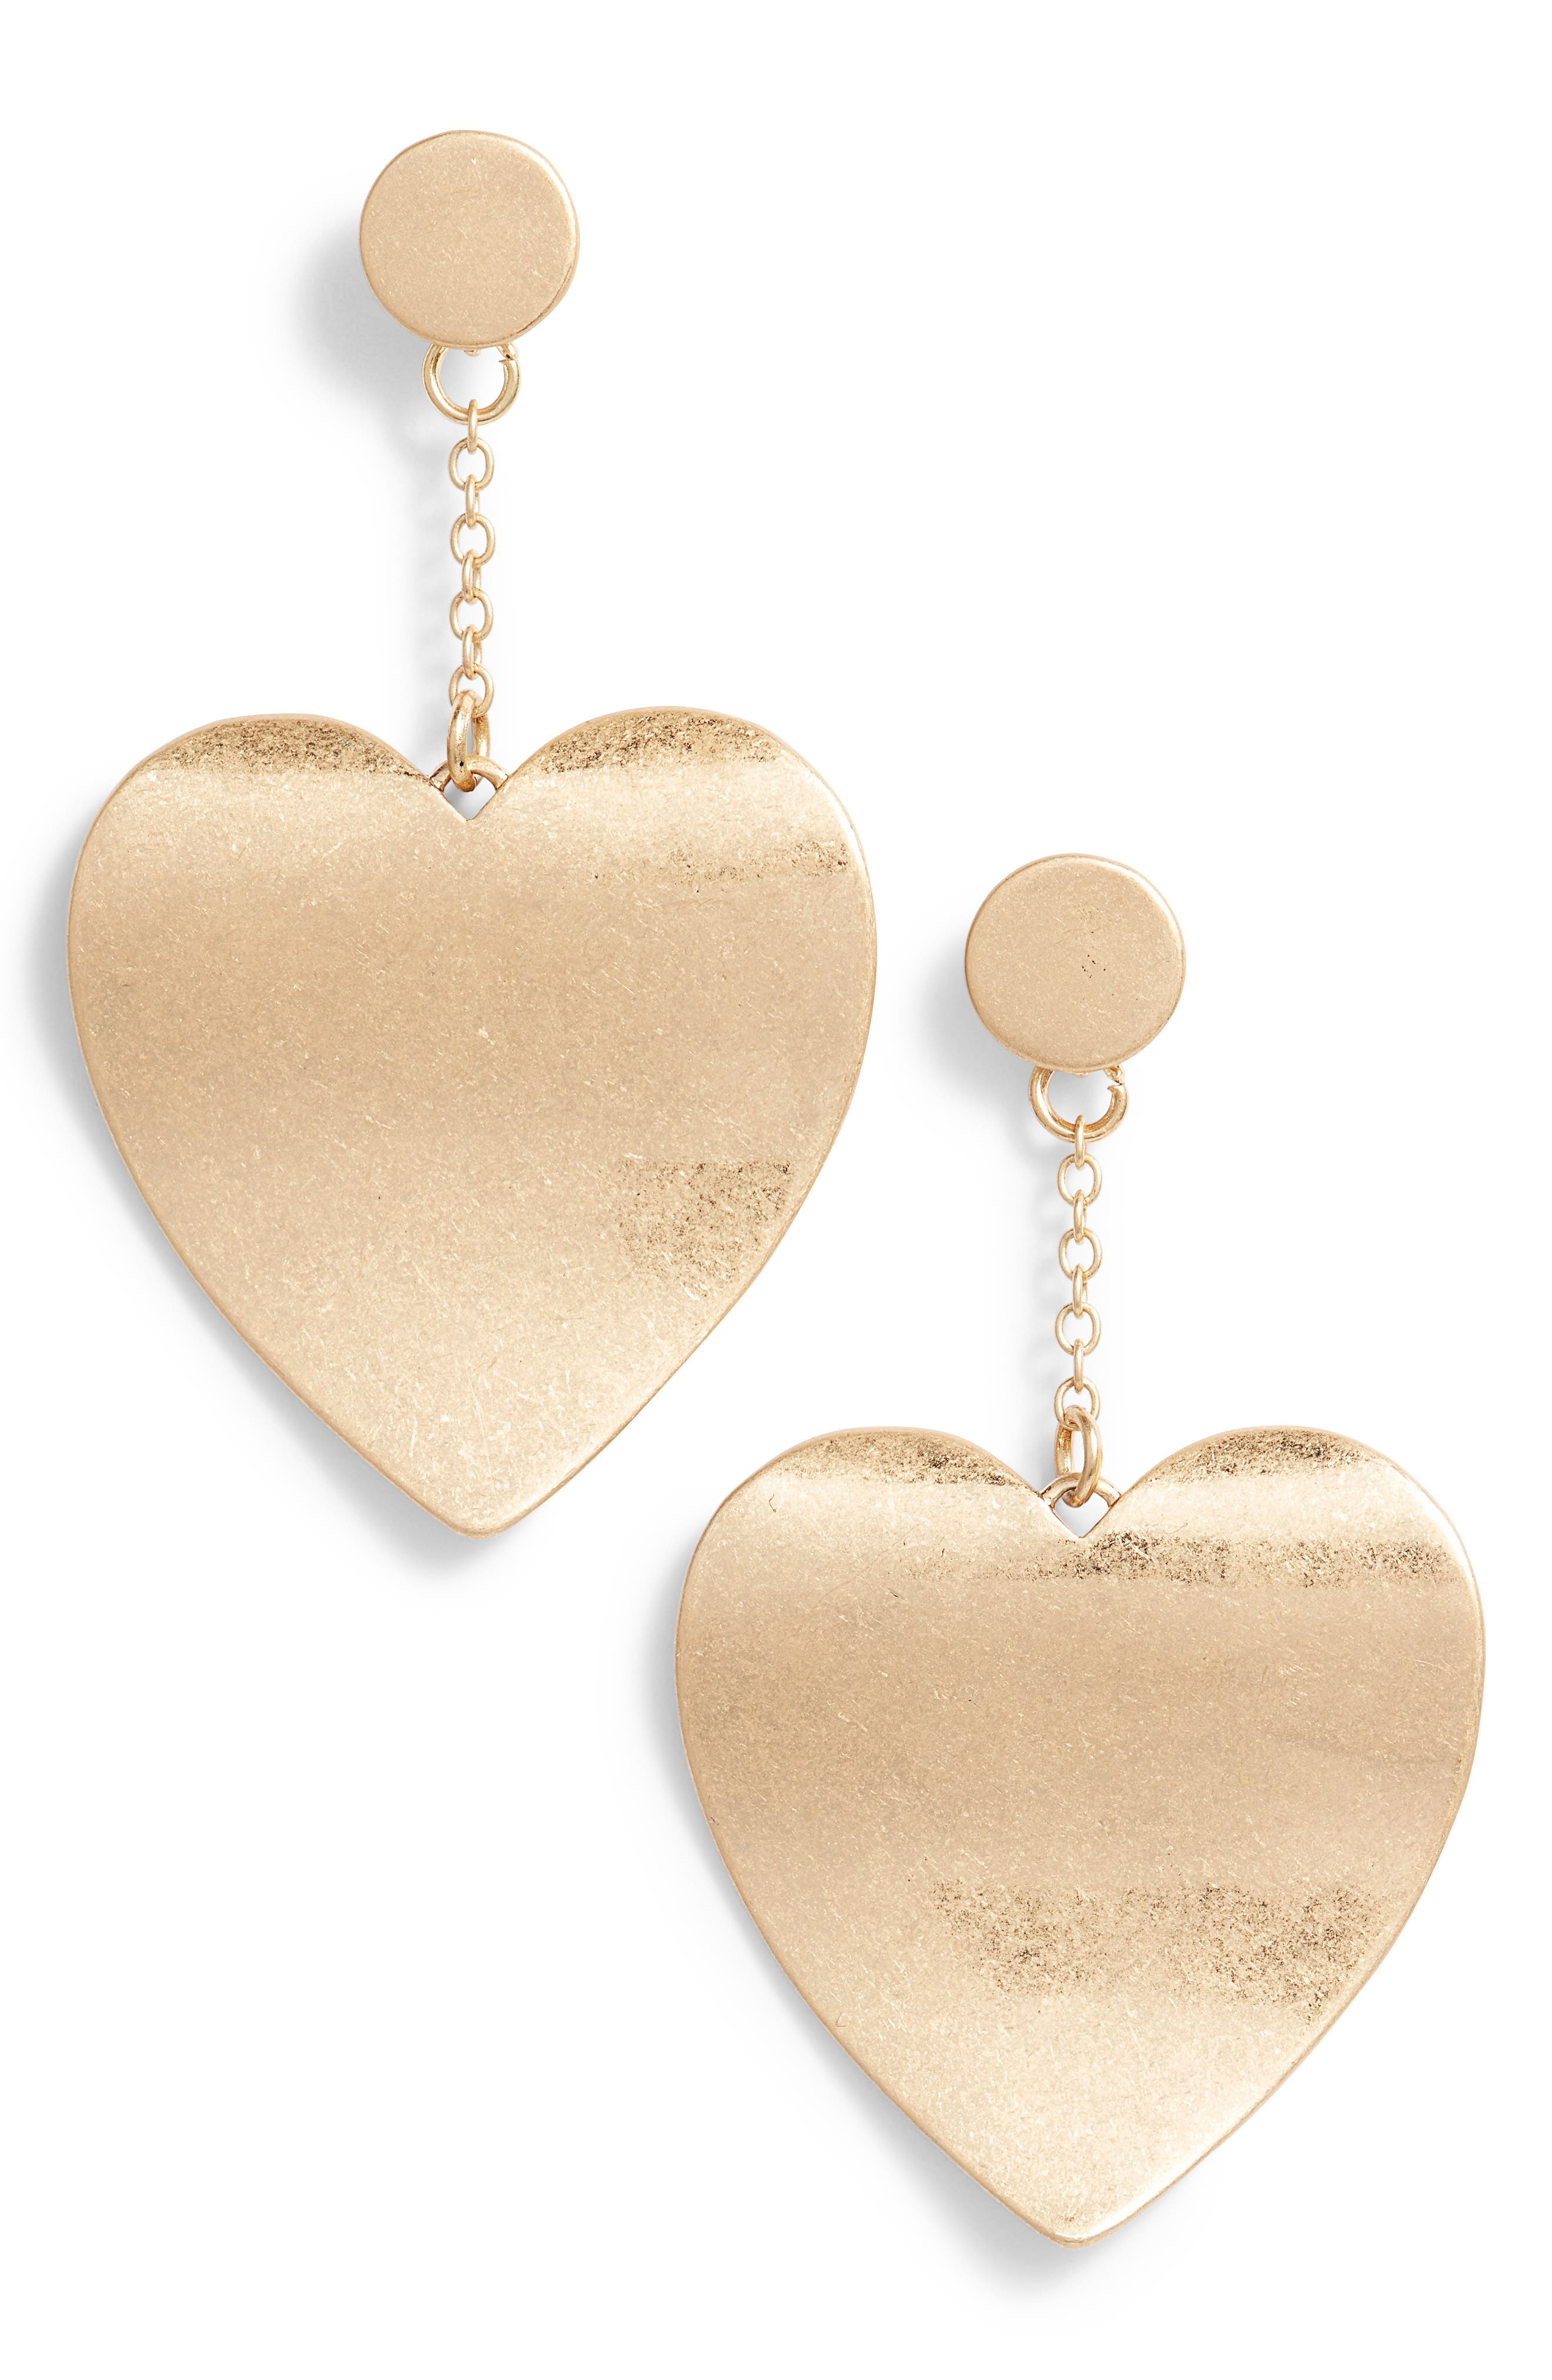 Sadie Heart Drop Earrings,                             Main thumbnail 1, color,